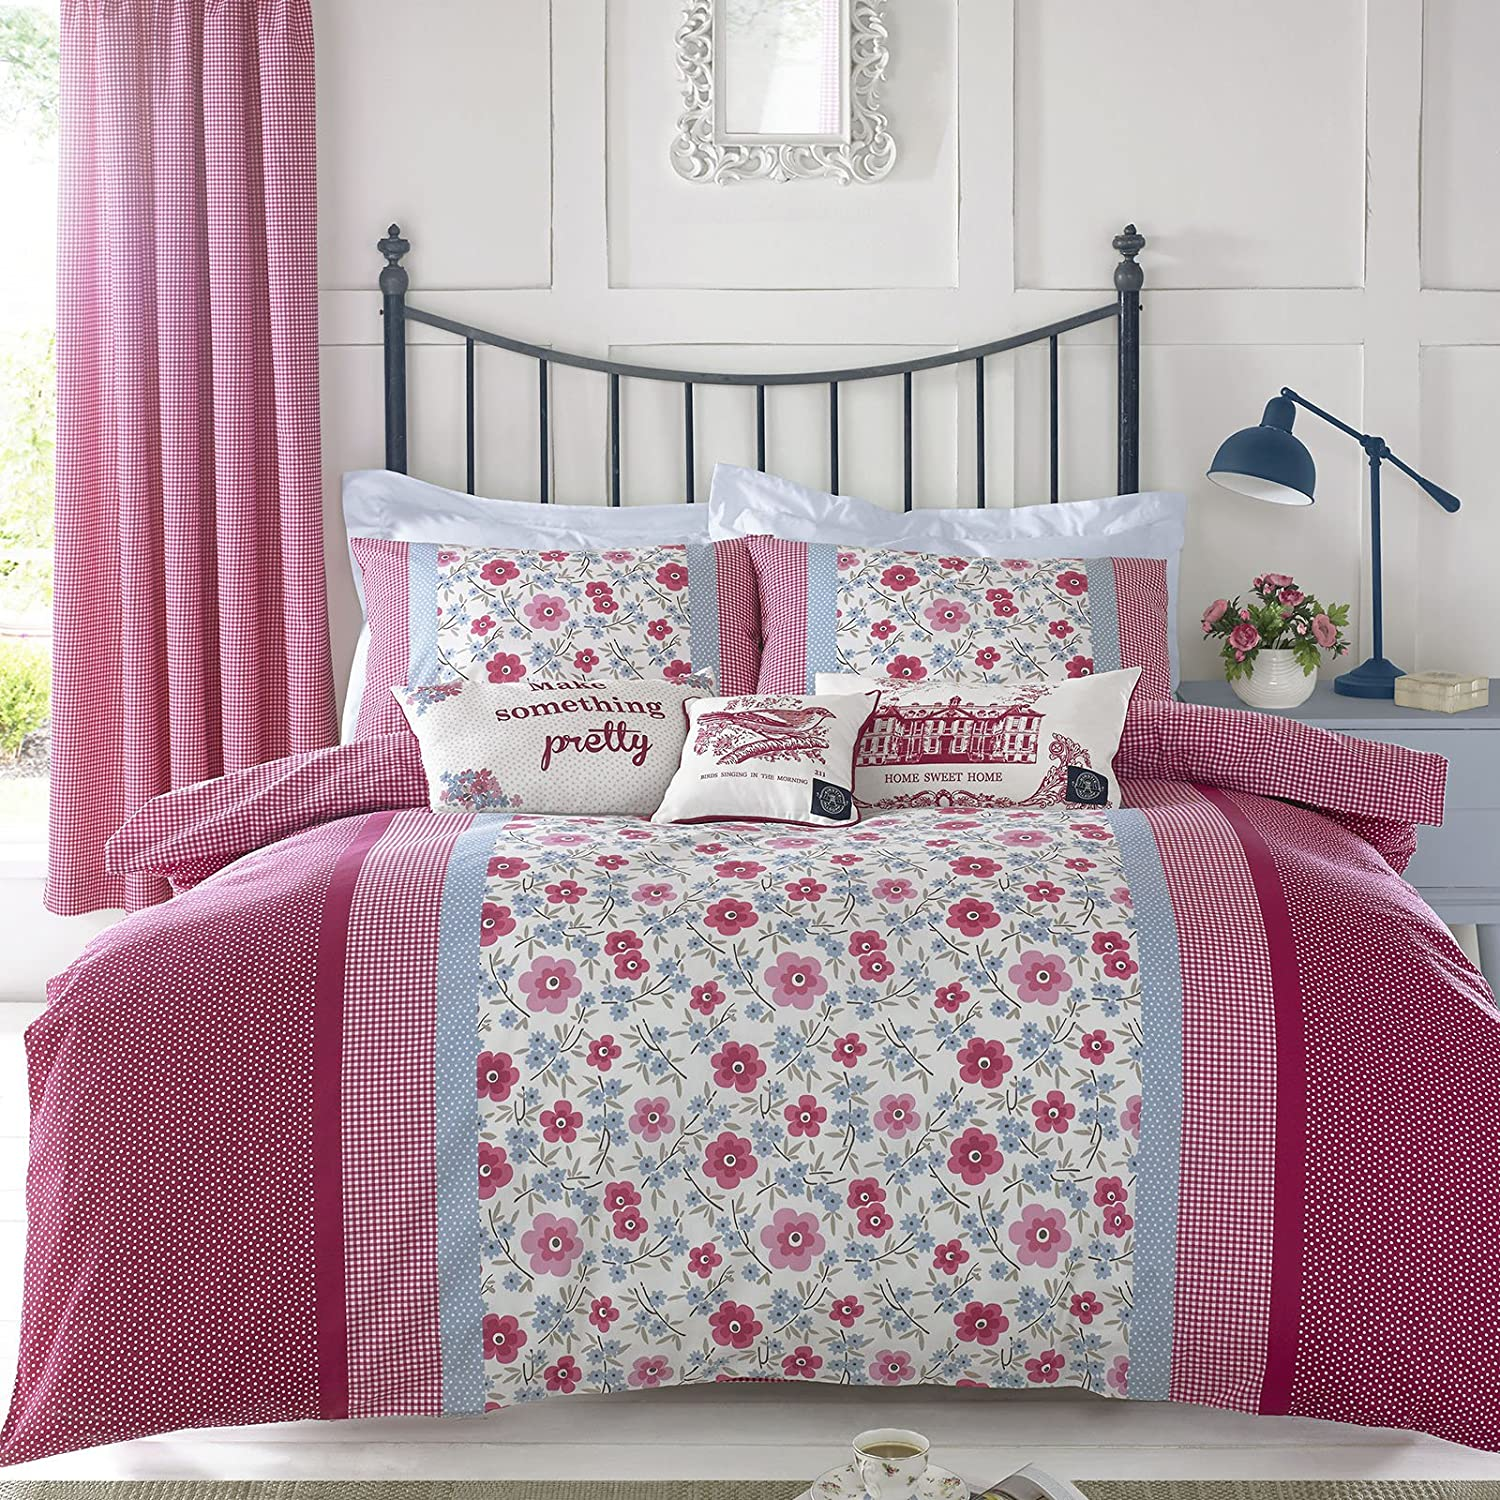 kirstie allsopp leola red  blue floral  gingham  cotton king  - kirstie allsopp leola red  blue floral  gingham  cotton king size duvetcover  pillowcases set amazoncouk kitchen  home